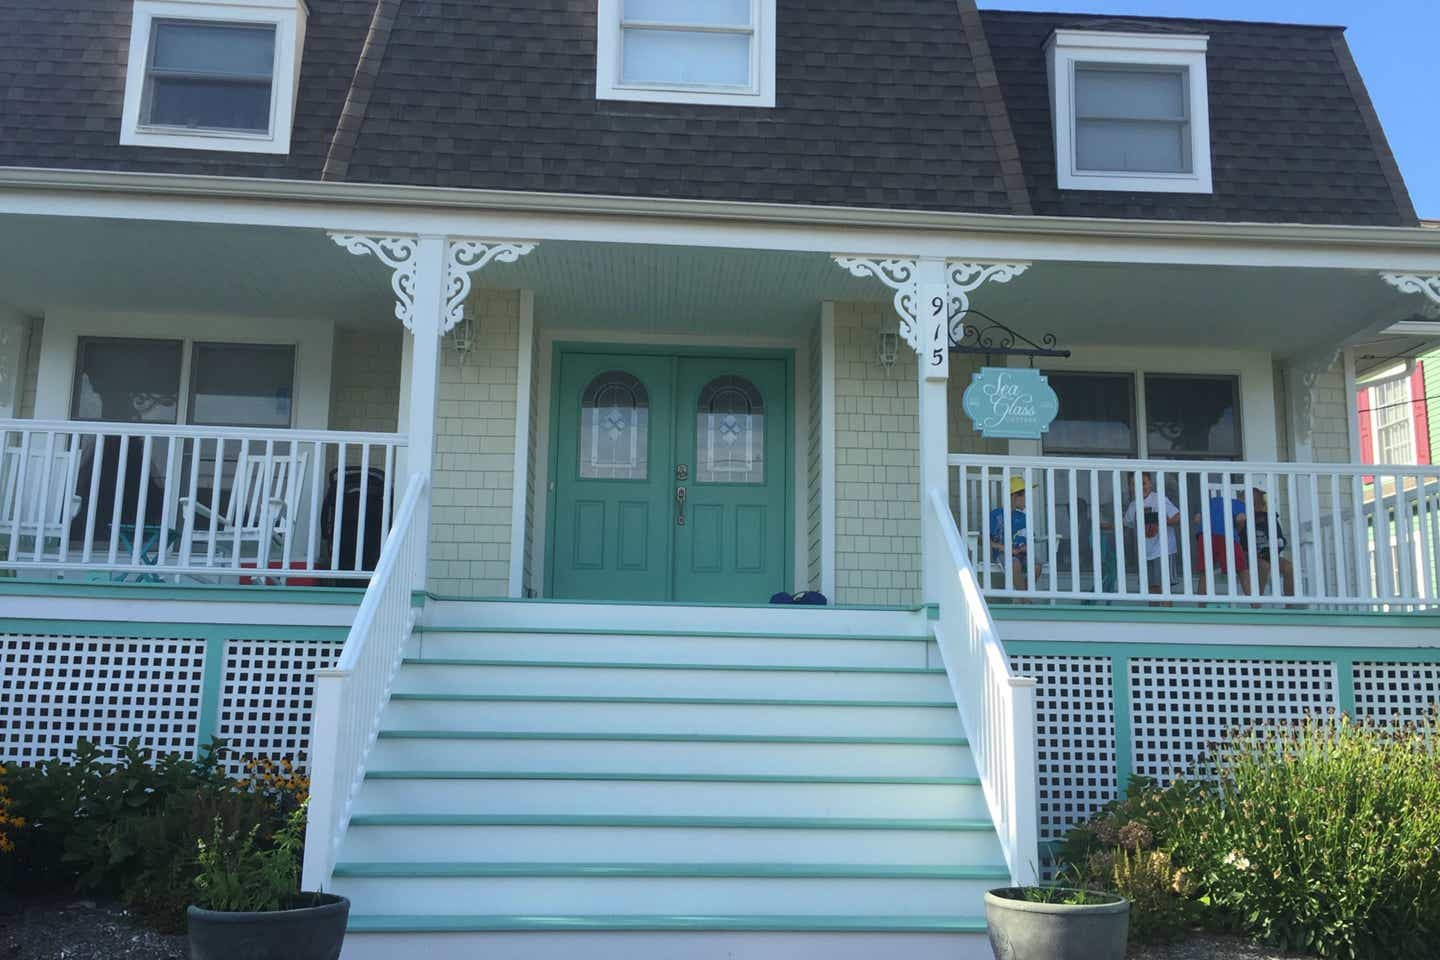 Exterior shot of the Sea Glass Cottage at Cape May with a wrap-around white porch and aqua siding and doors.